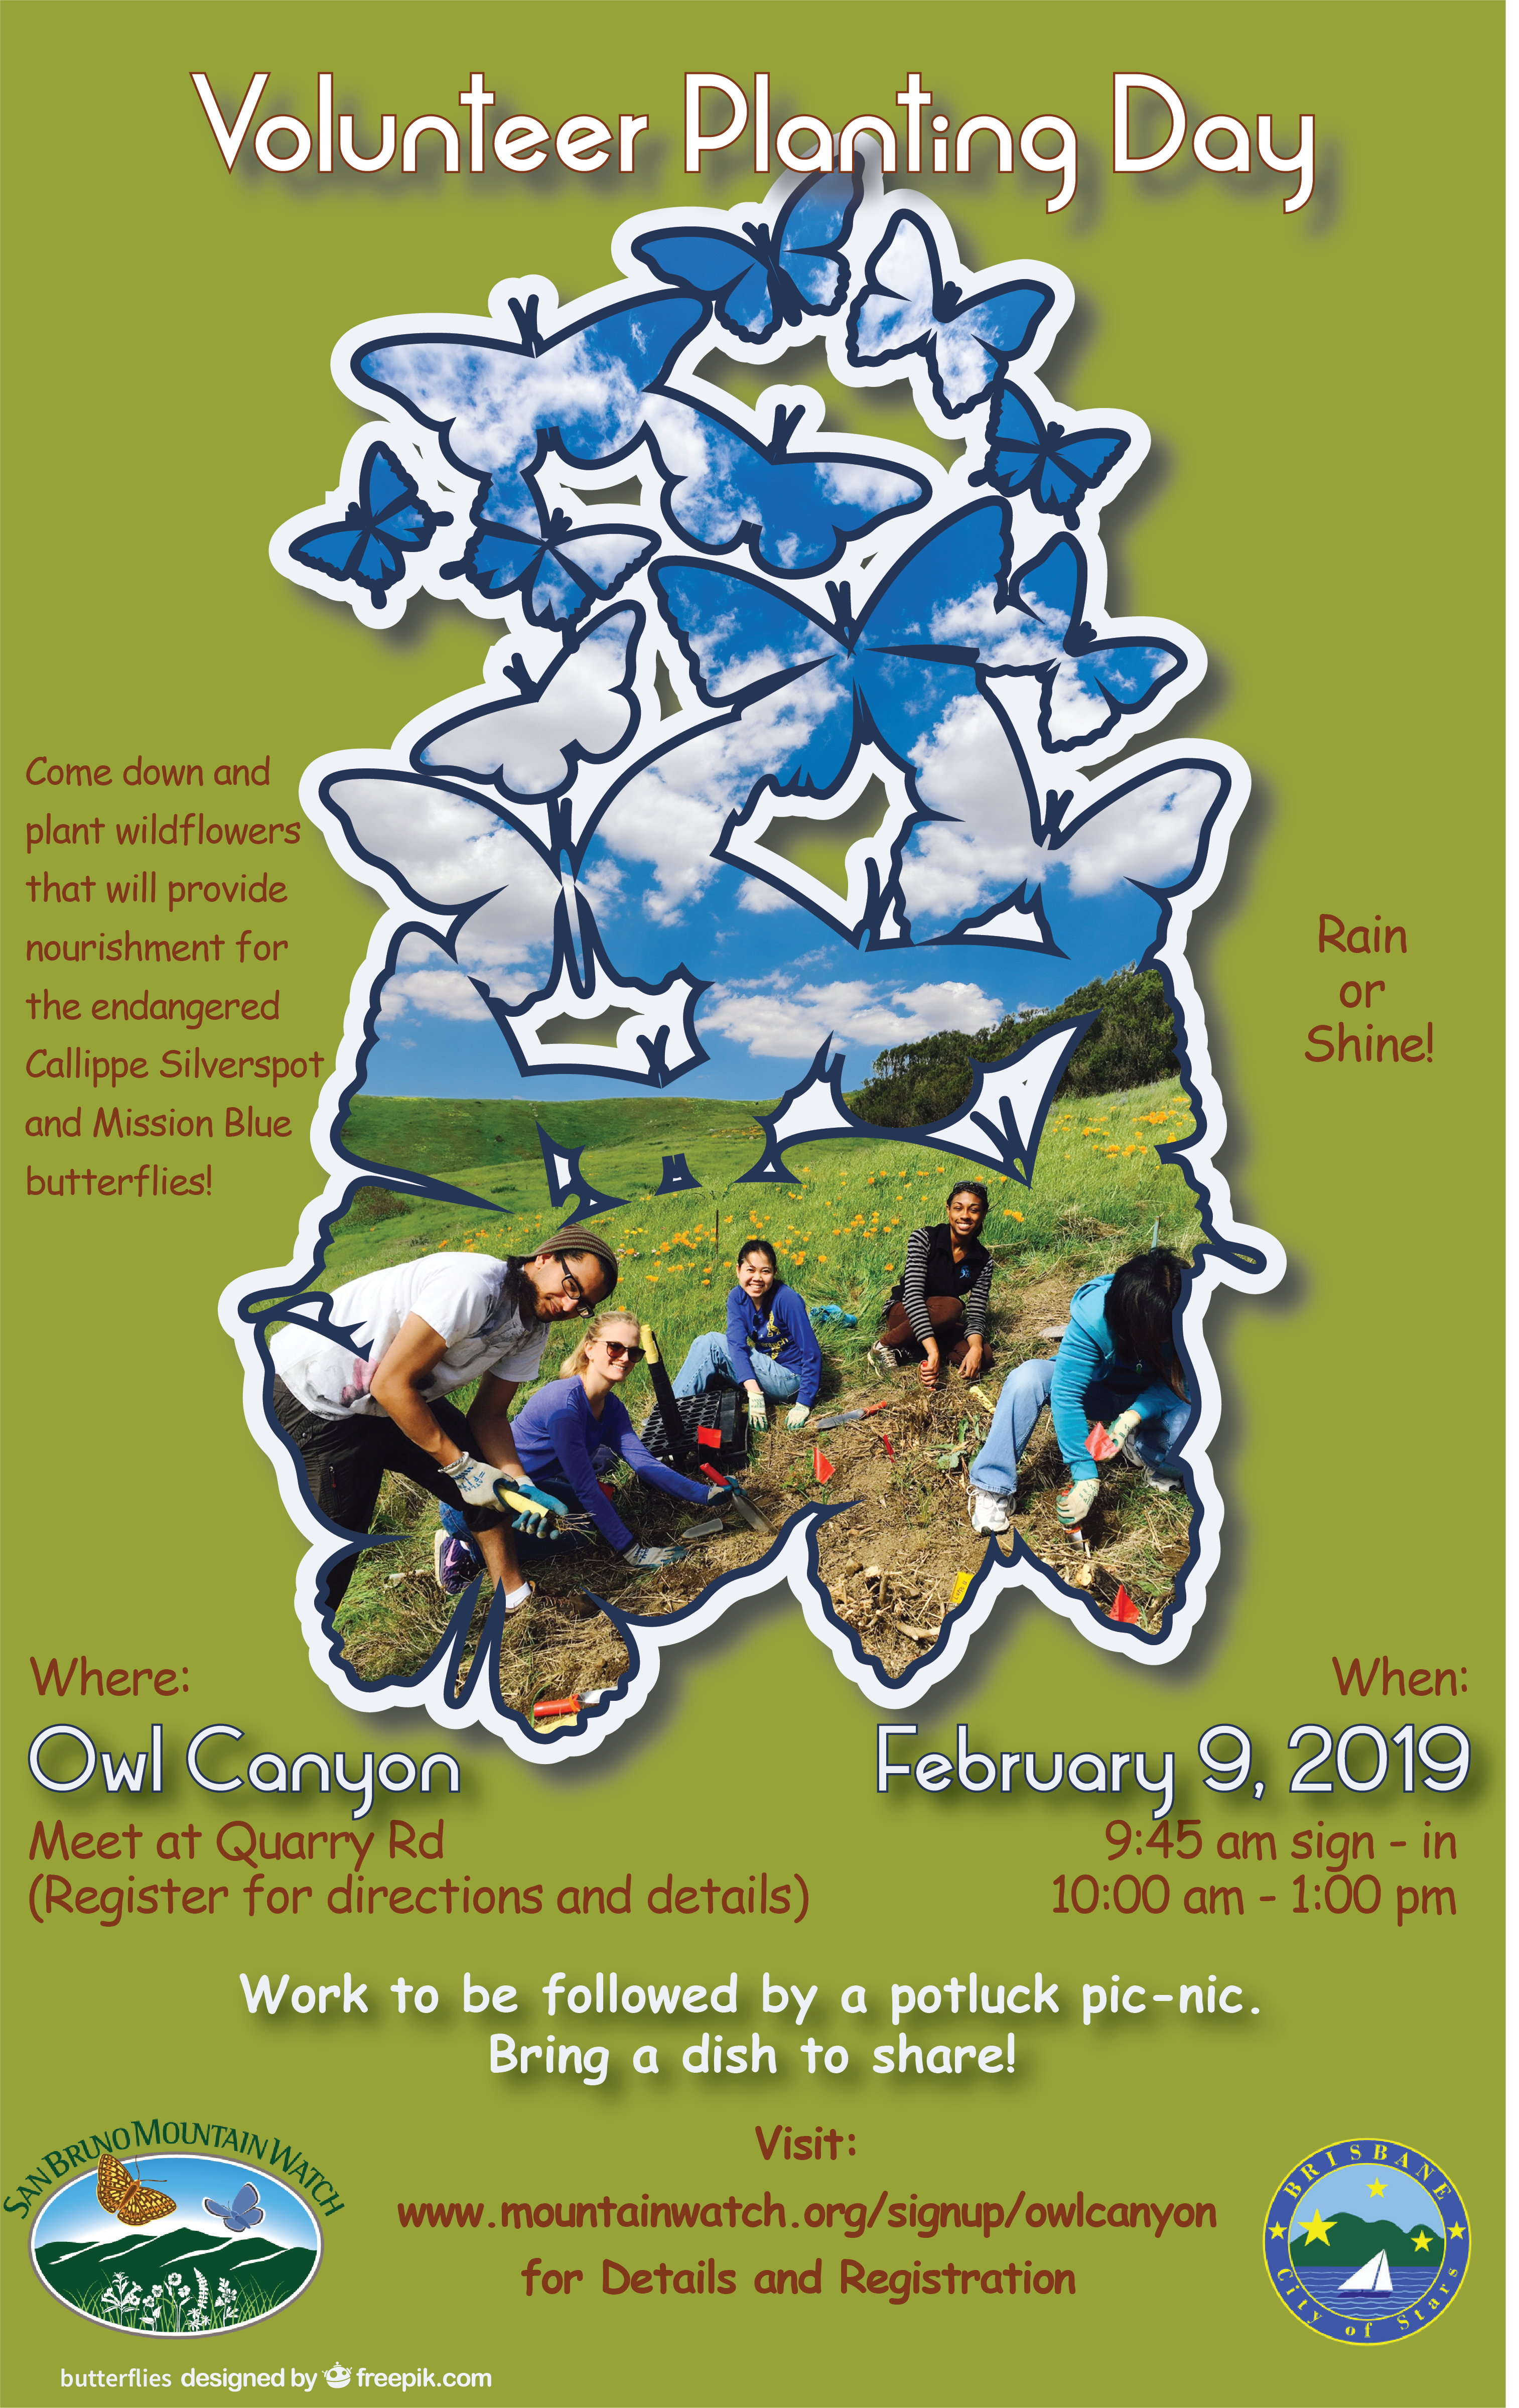 Volunteer Planting Day promotional flyer